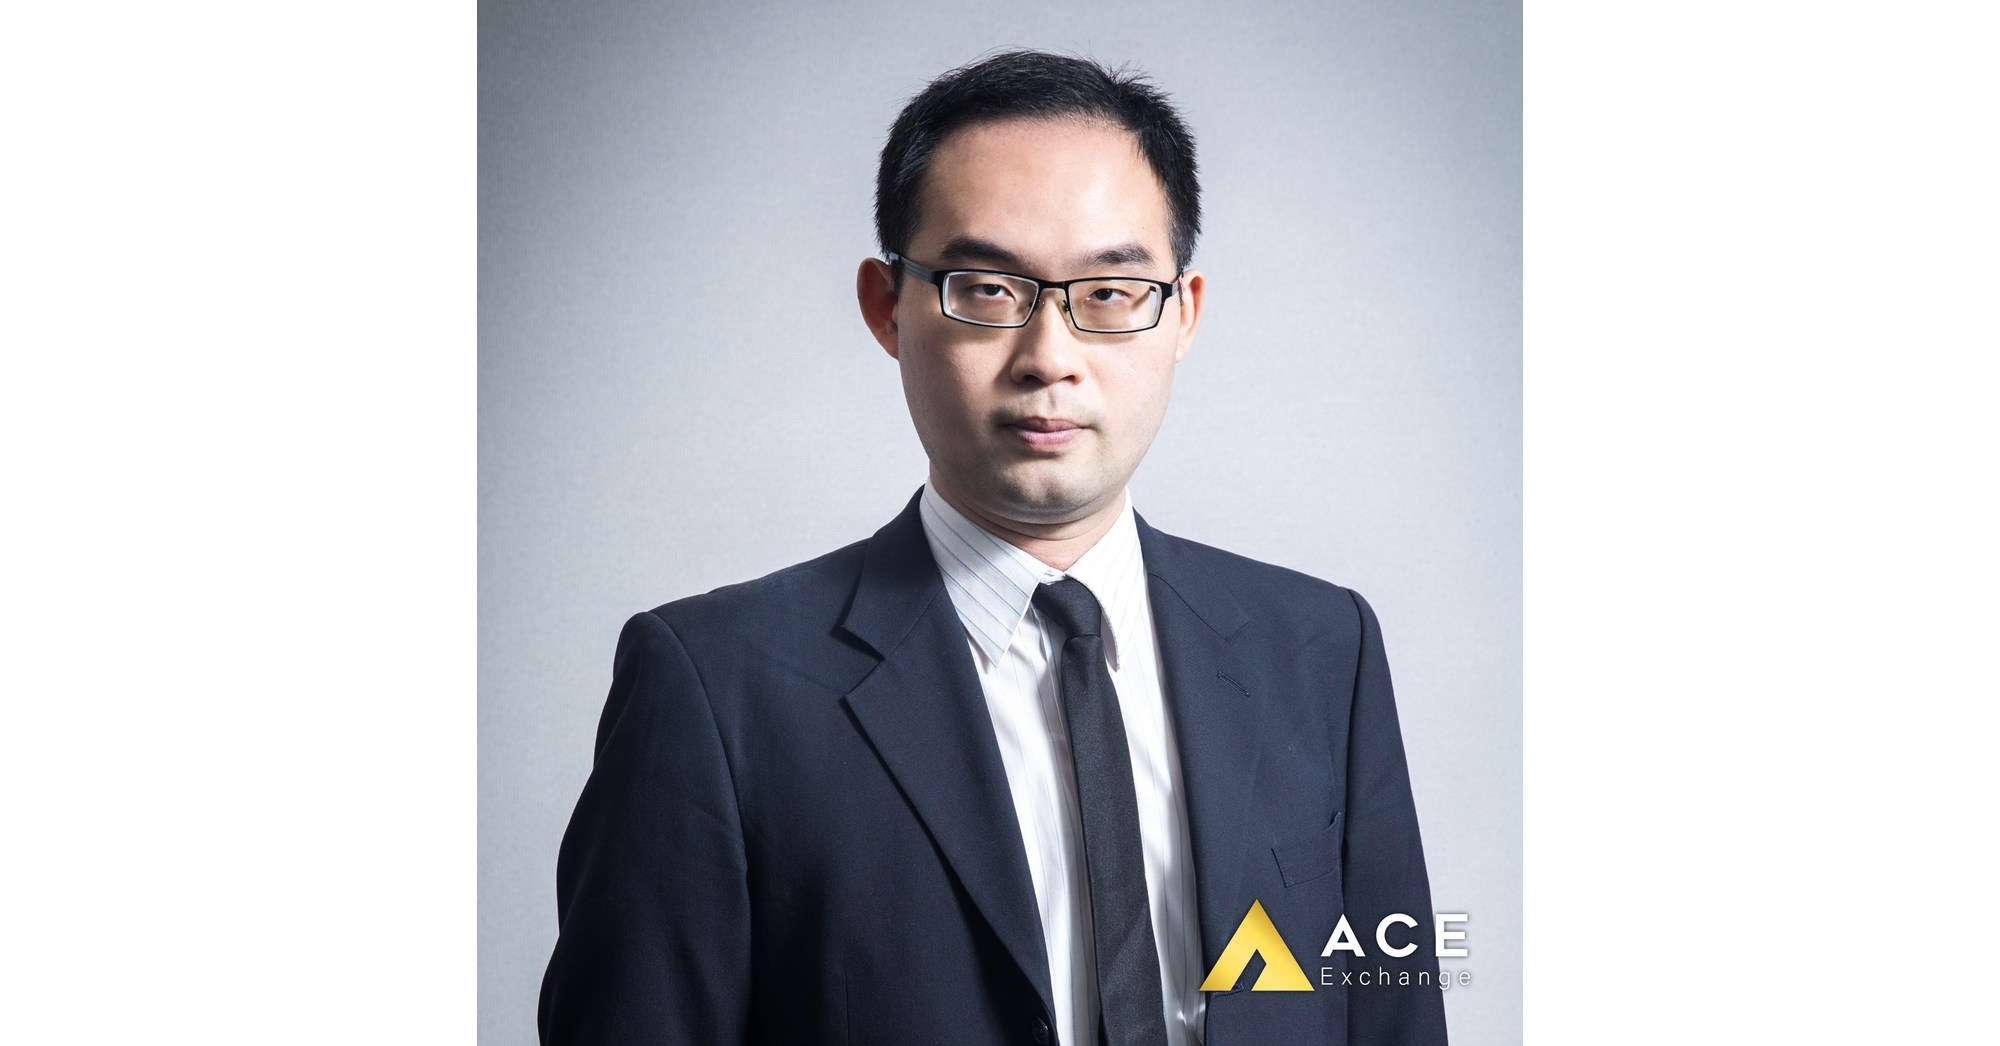 ACE Exchange Tackles Cryptocurrency Money Laundering With KPMG, KGI Bank and CYBAVO